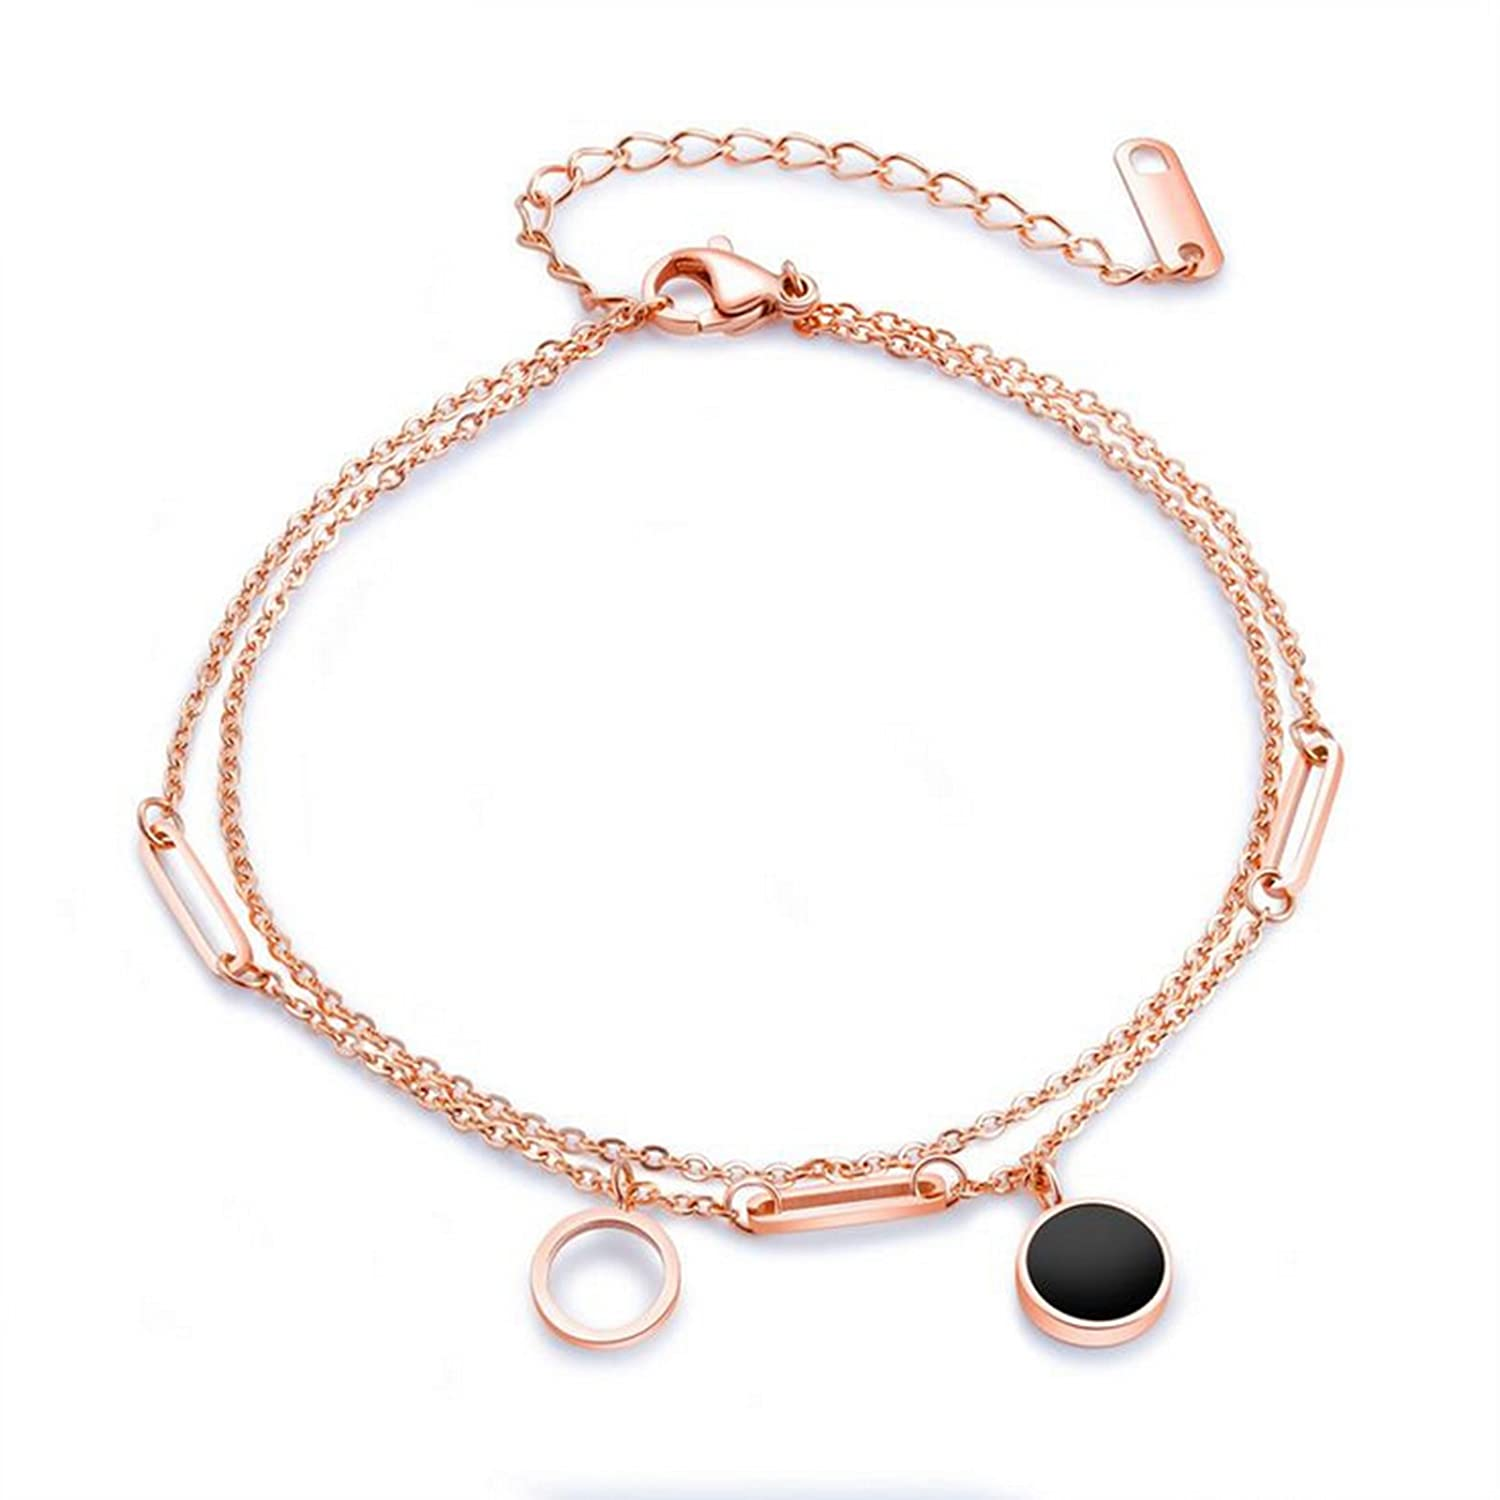 Epinki Women Rose Gold Ankle Bracelet Stainless Steel Anklet Bracelet Double Chain Round Charms ZGF0121AN040